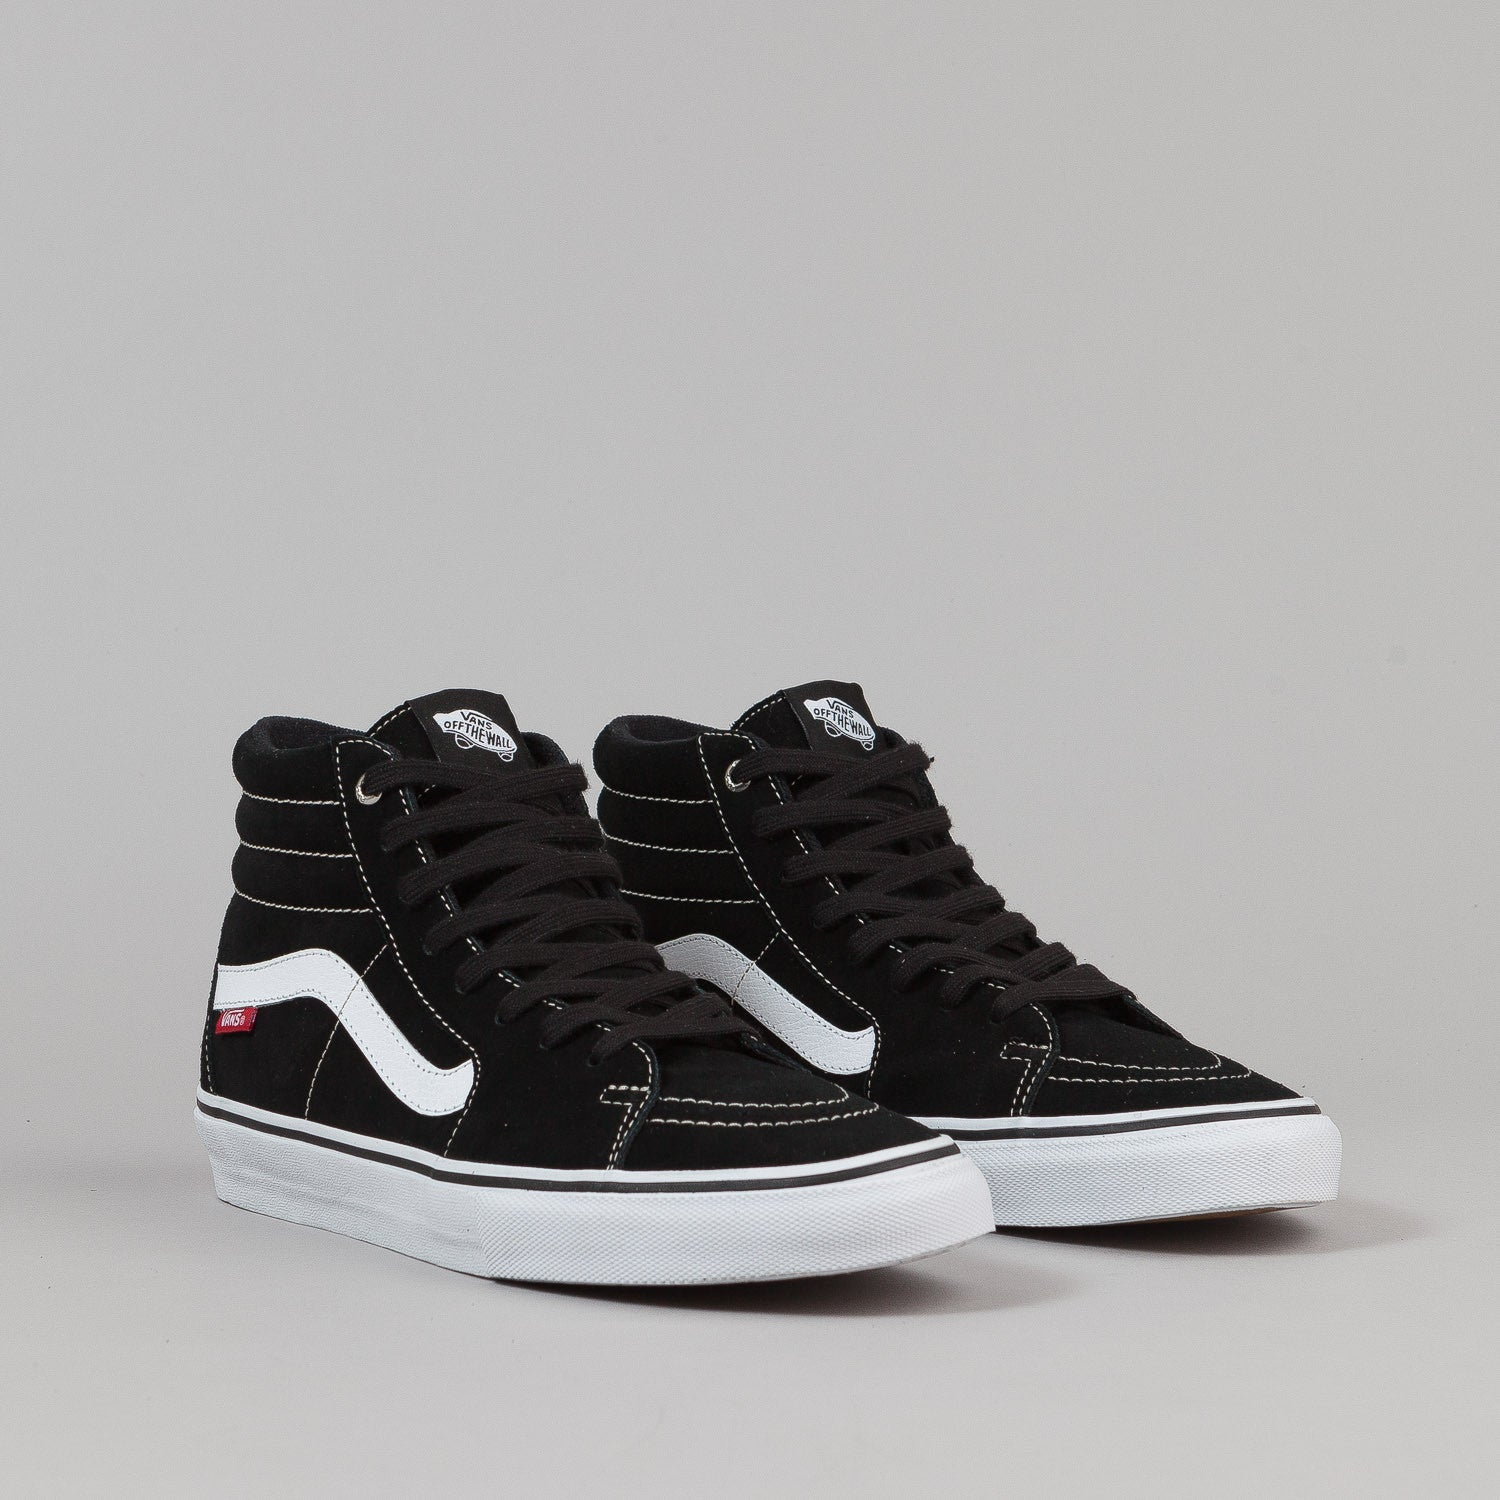 Vans Sk8-Hi Pro Shoes - Black / White / Red